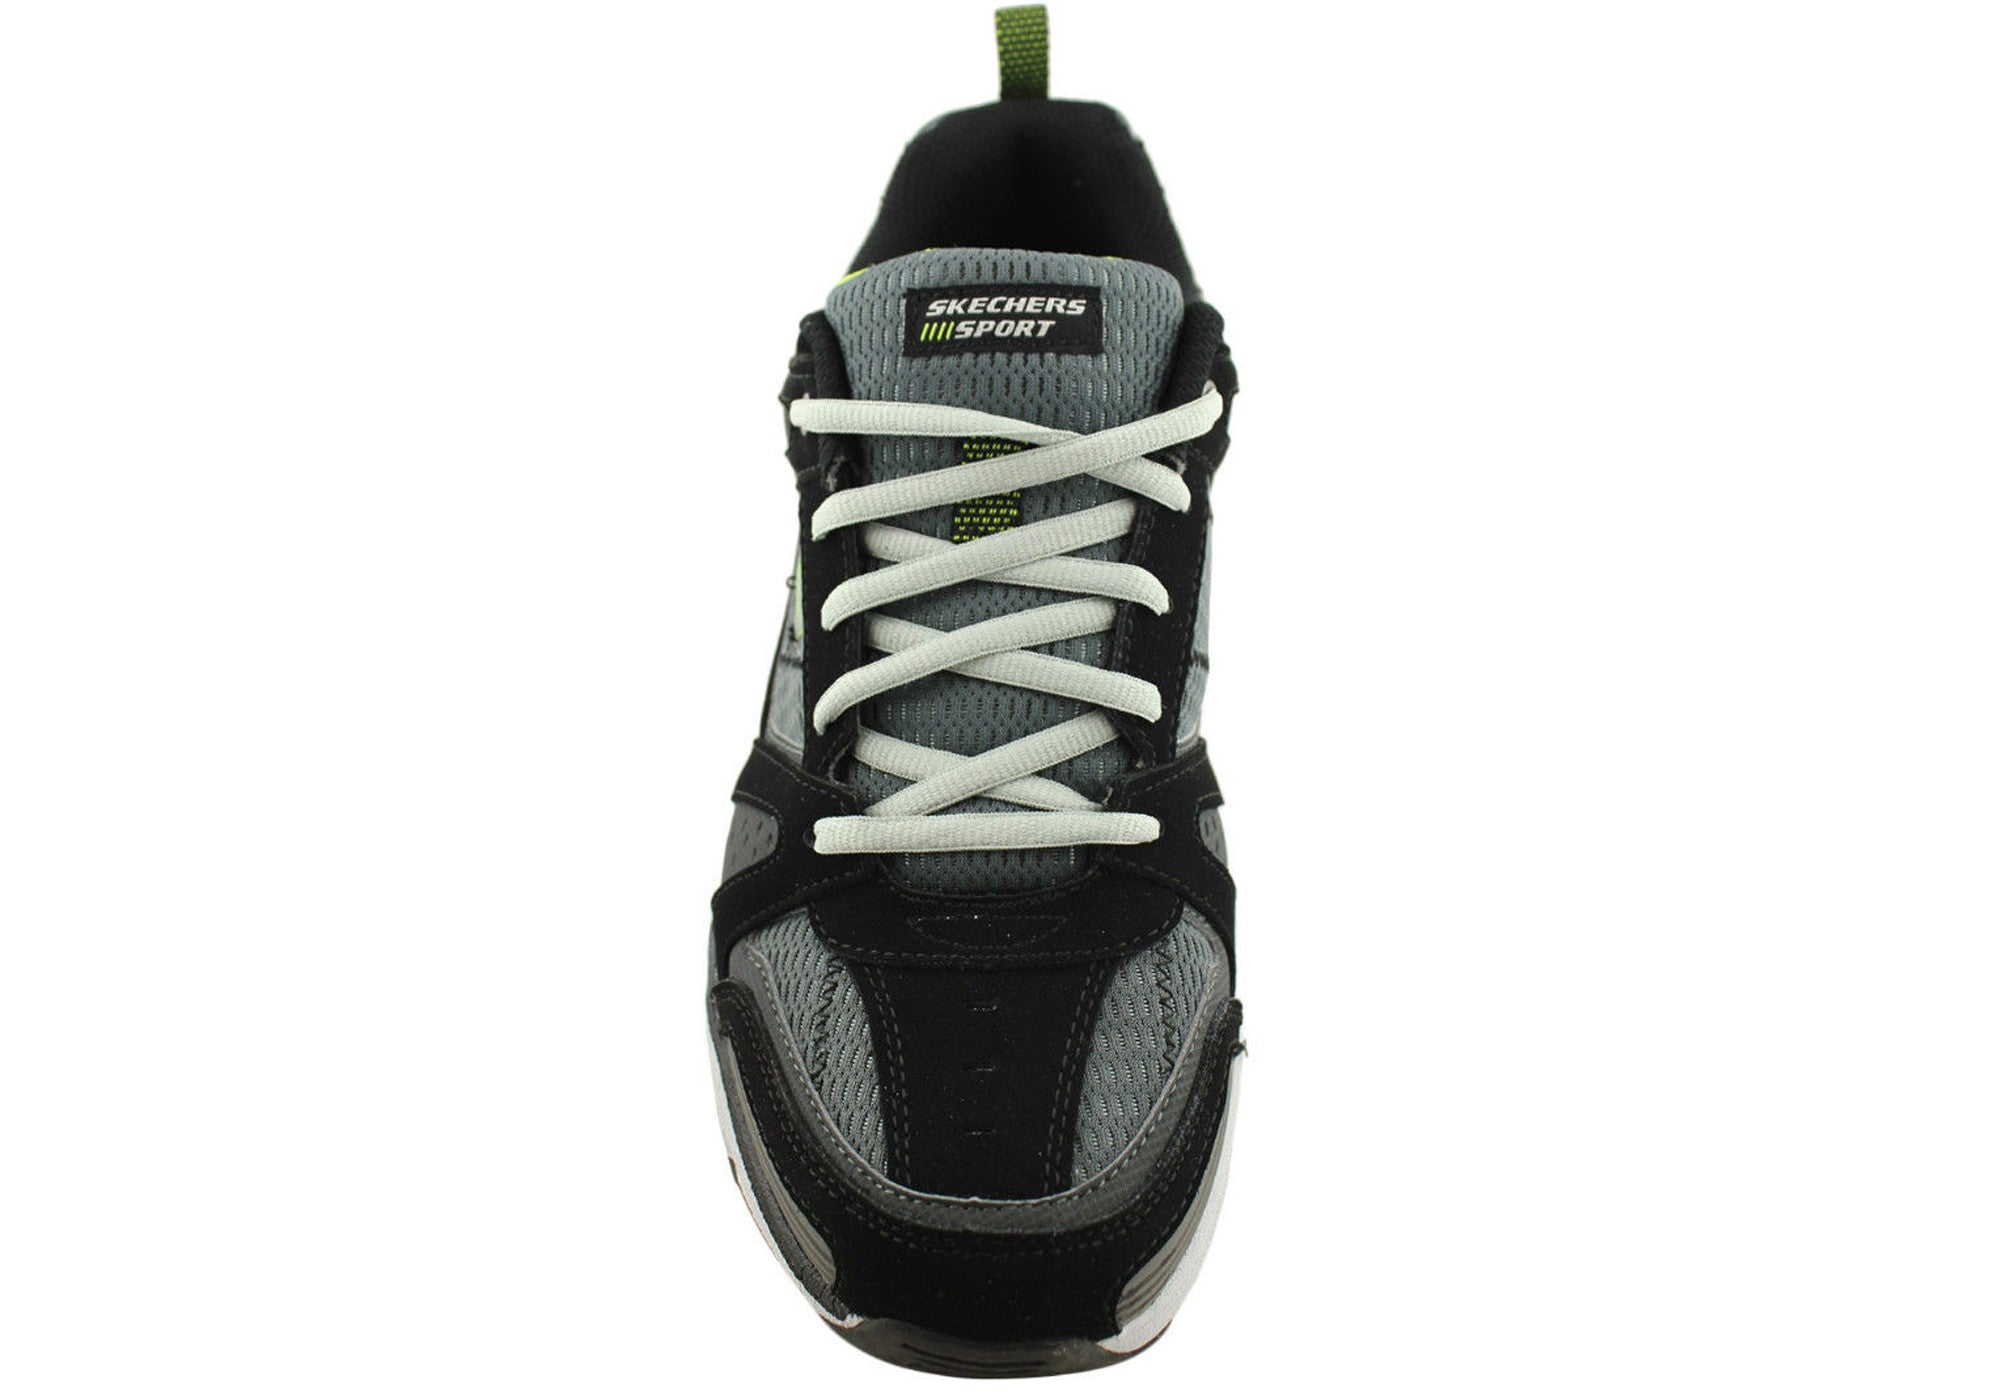 Skechers Reflex Mens Comfortable Lace Up Sneakers